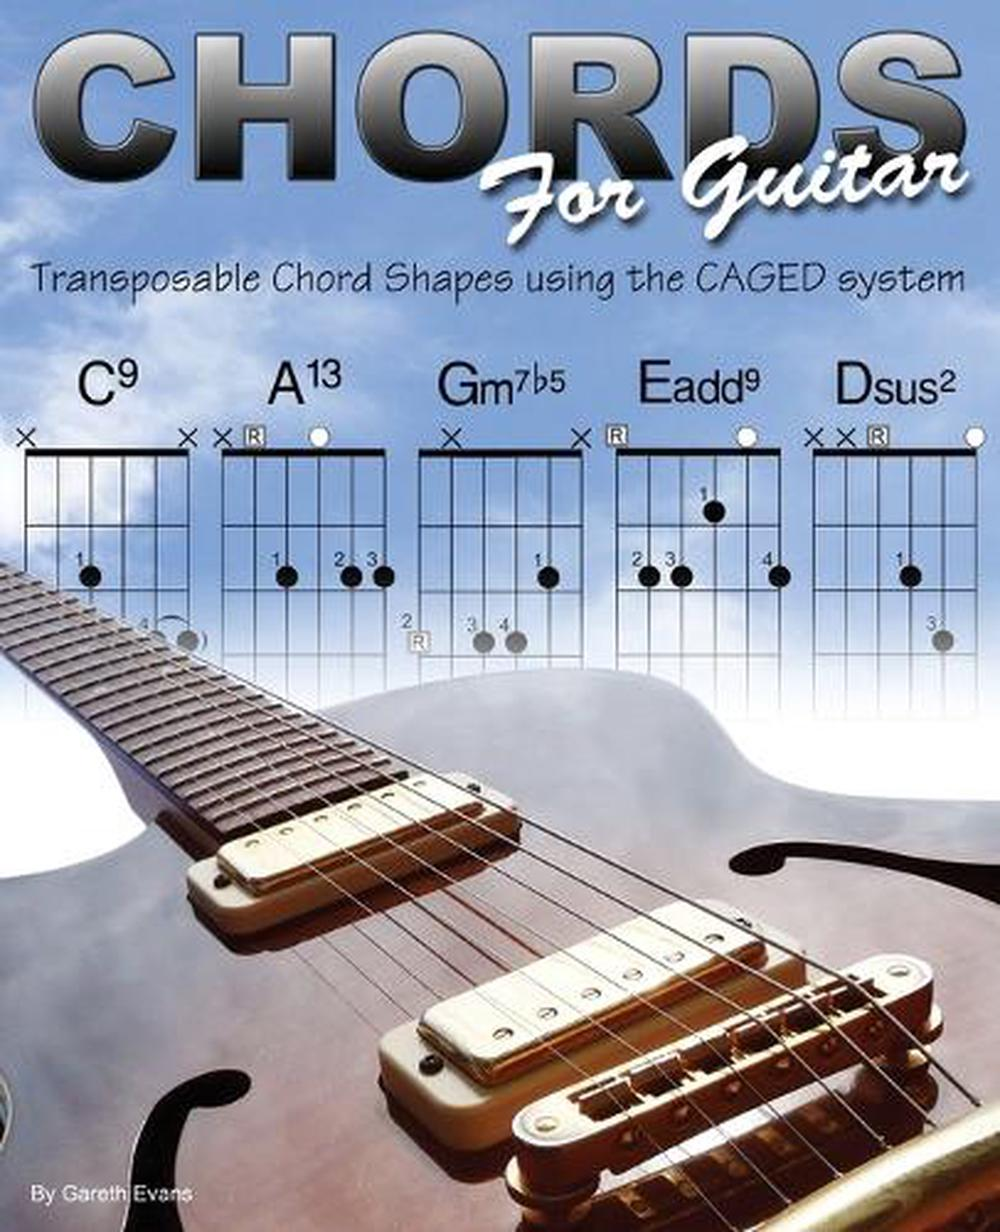 Chords For Guitar Transposable Chord Shapes Using The Caged System